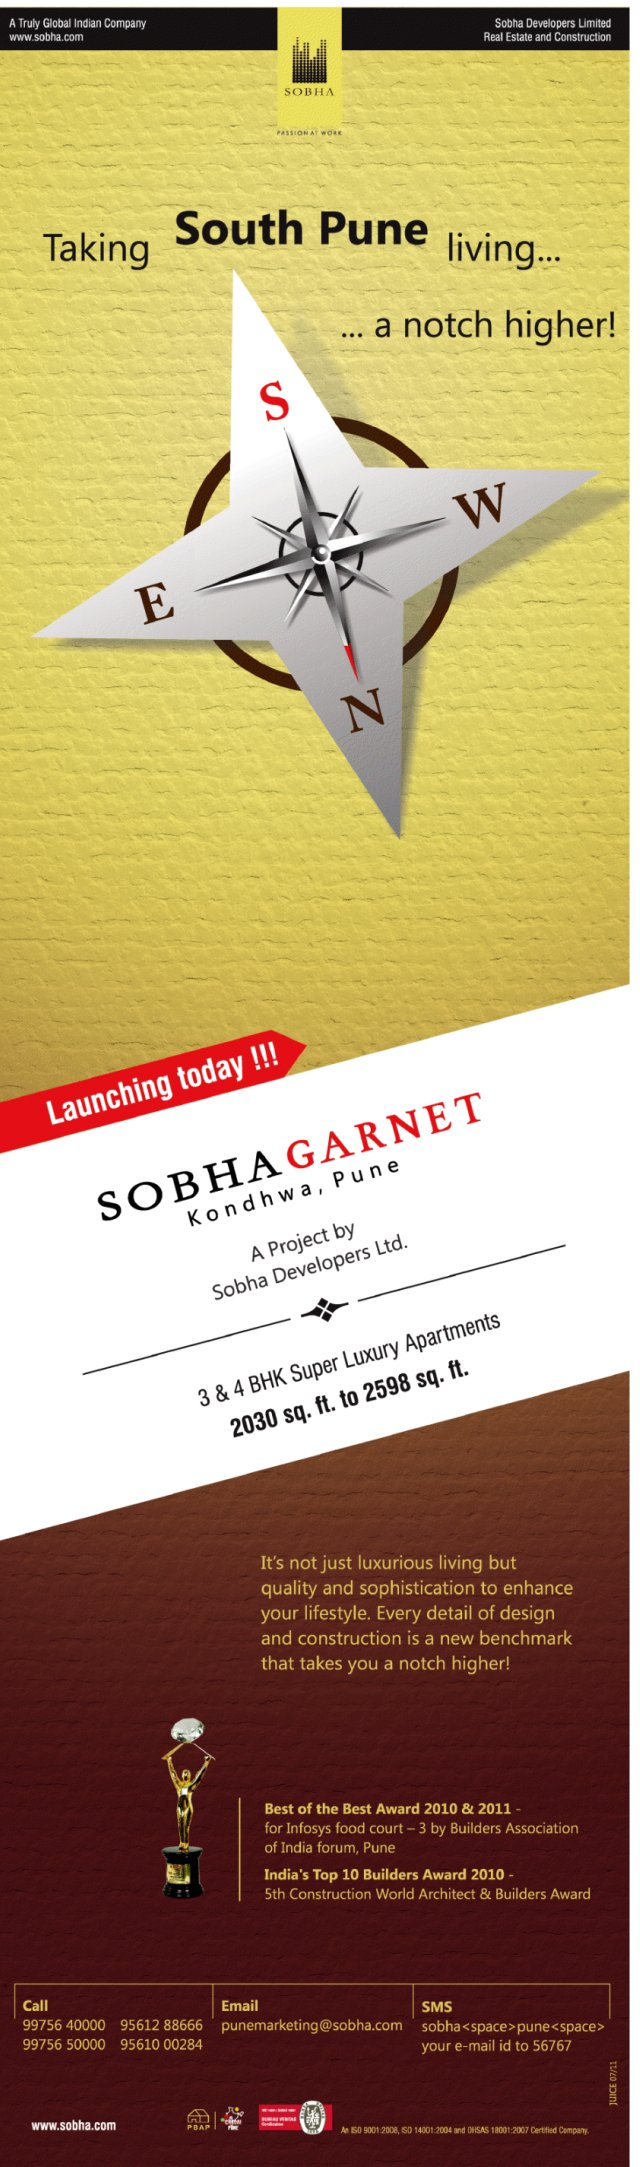 sobha-garnet-launch-ad-2